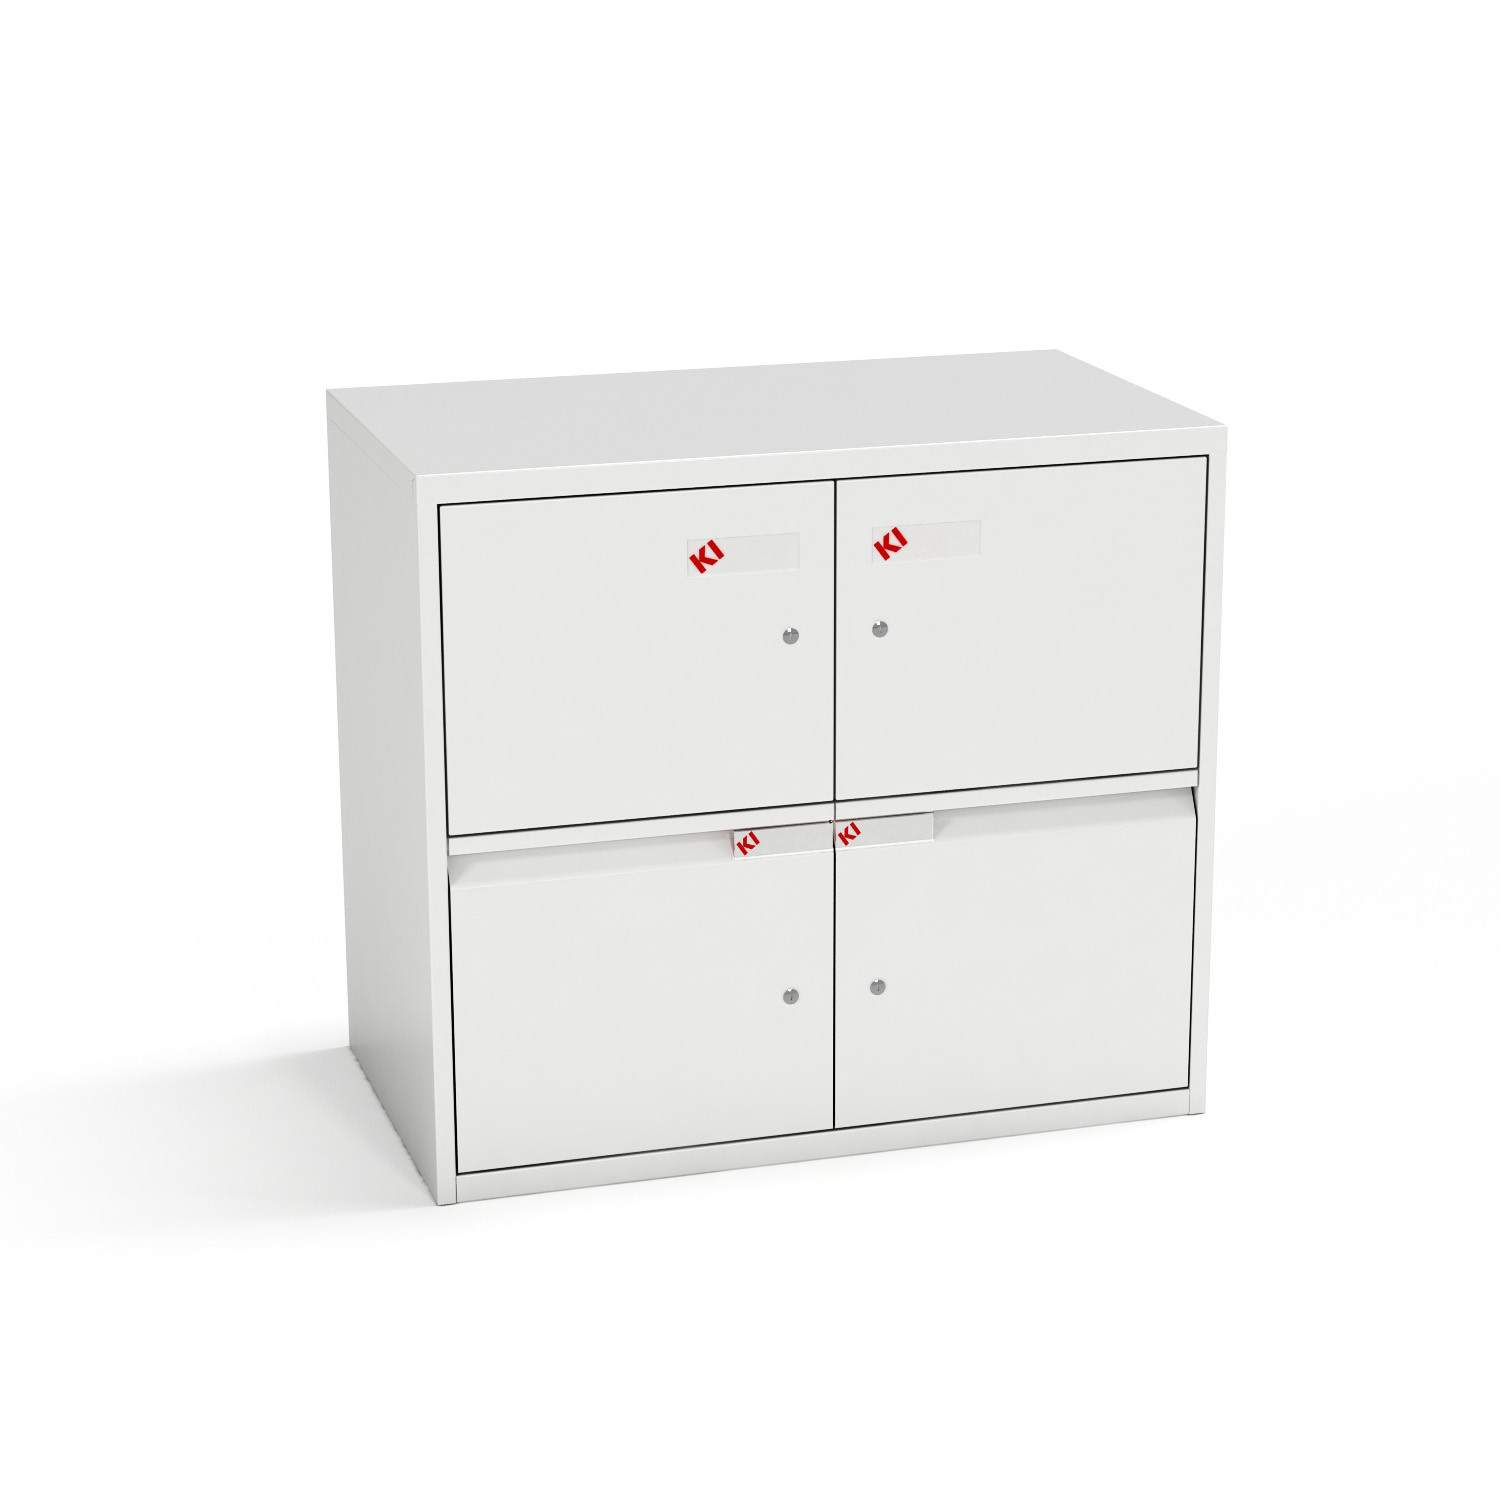 UniteSE Lockers - 4 compartments